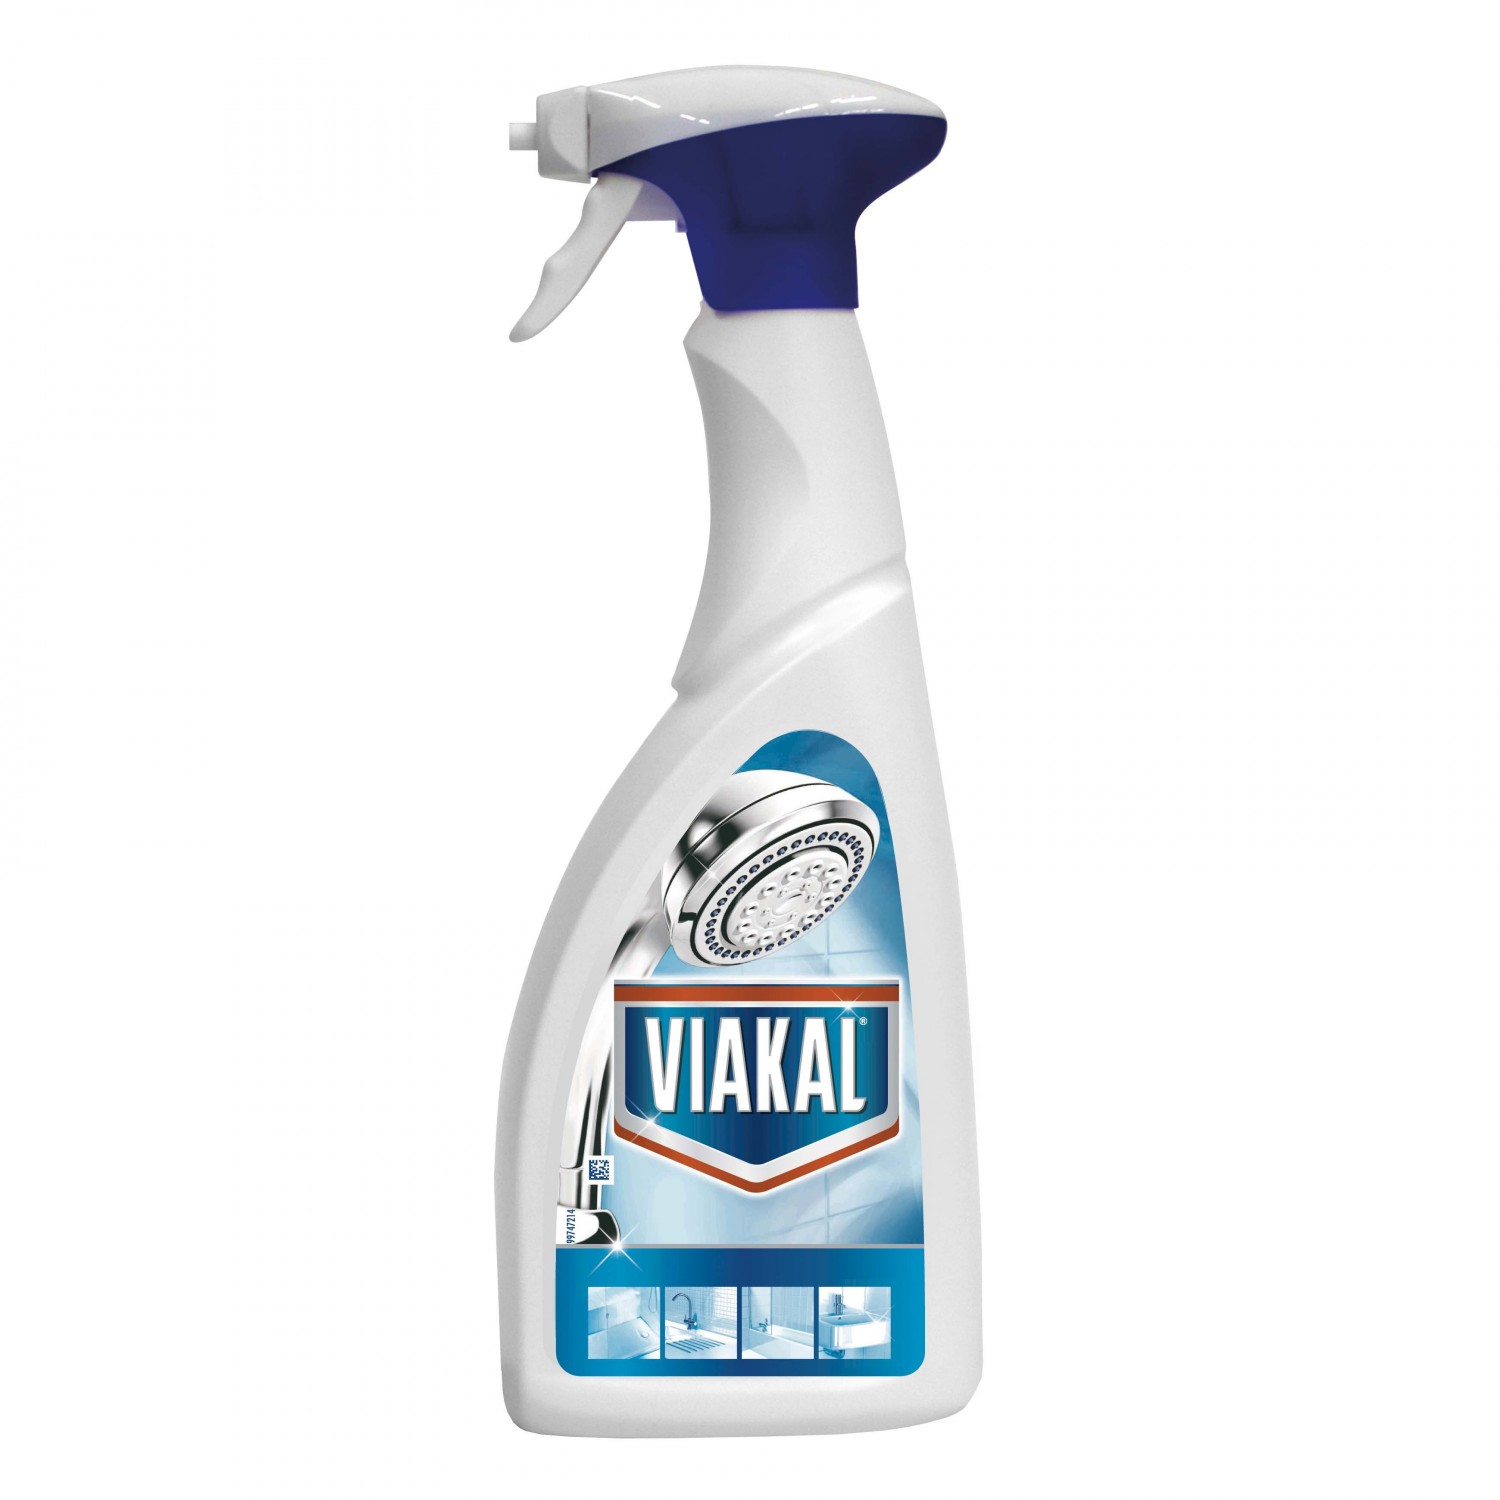 Viakal limpiahogar antical gel de 70cl. en spray